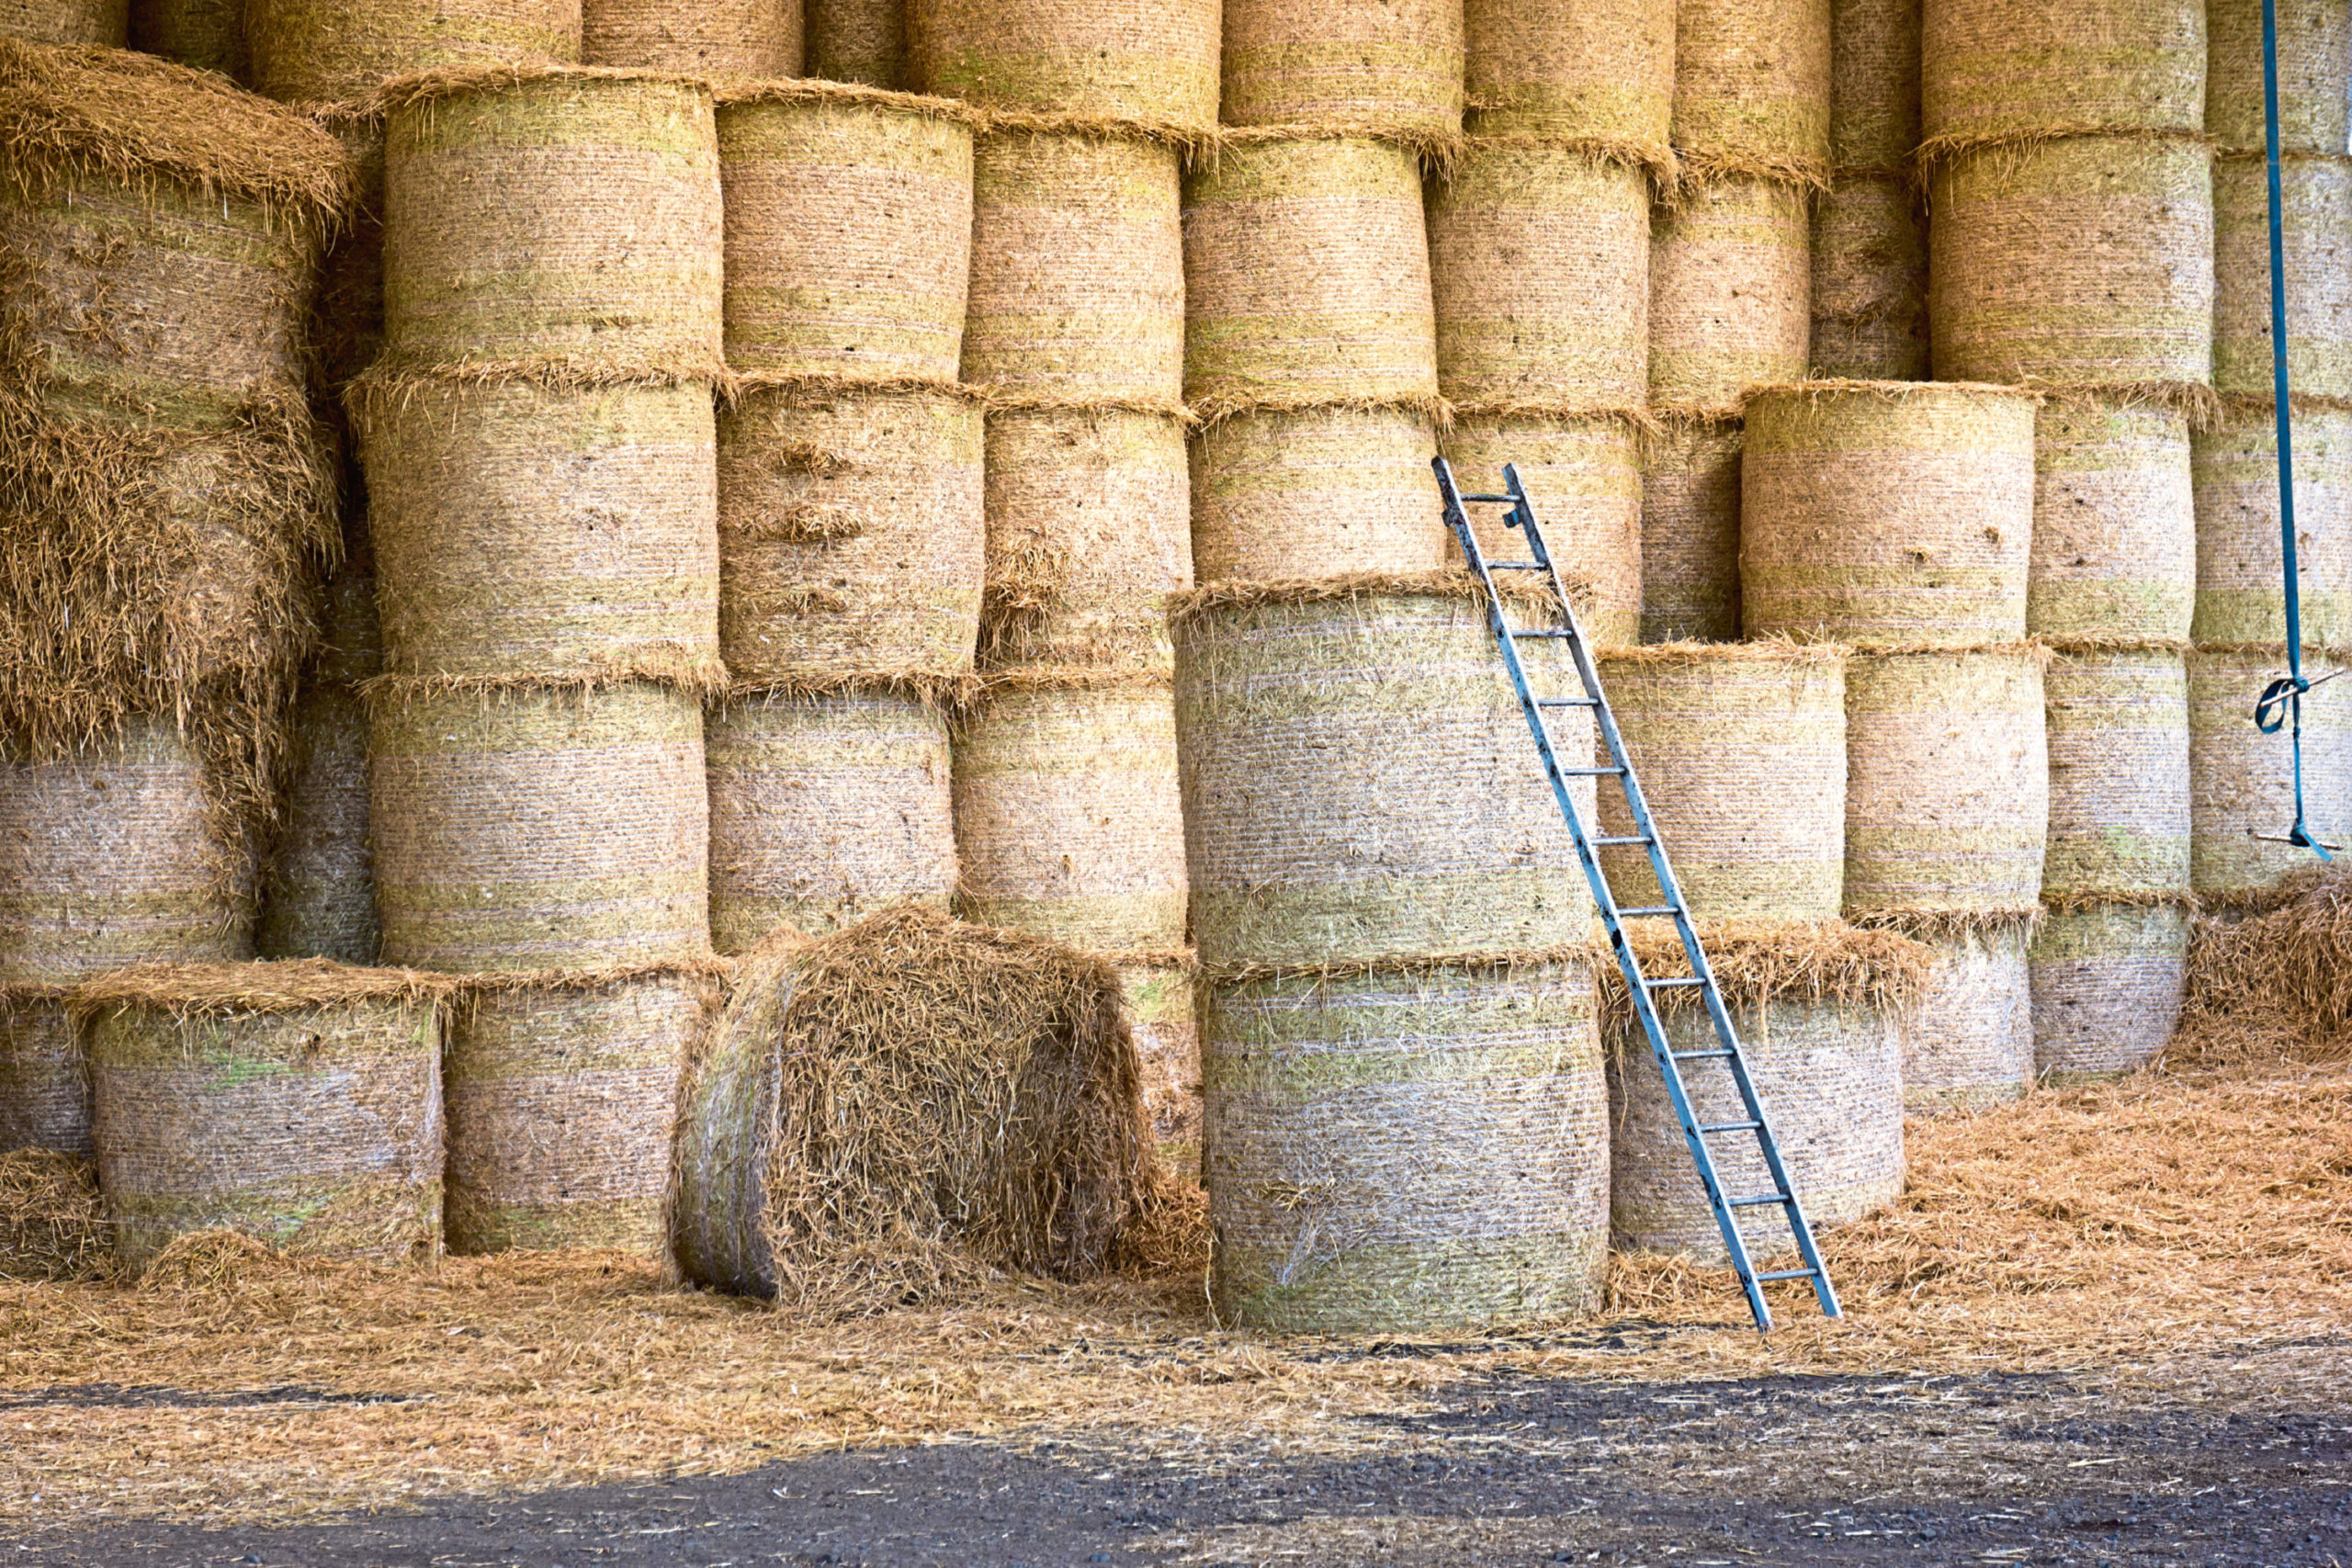 Farmers' leaders insist that attitudes to risk-taking and short cuts will have to change if the industry's safety record is to improve.